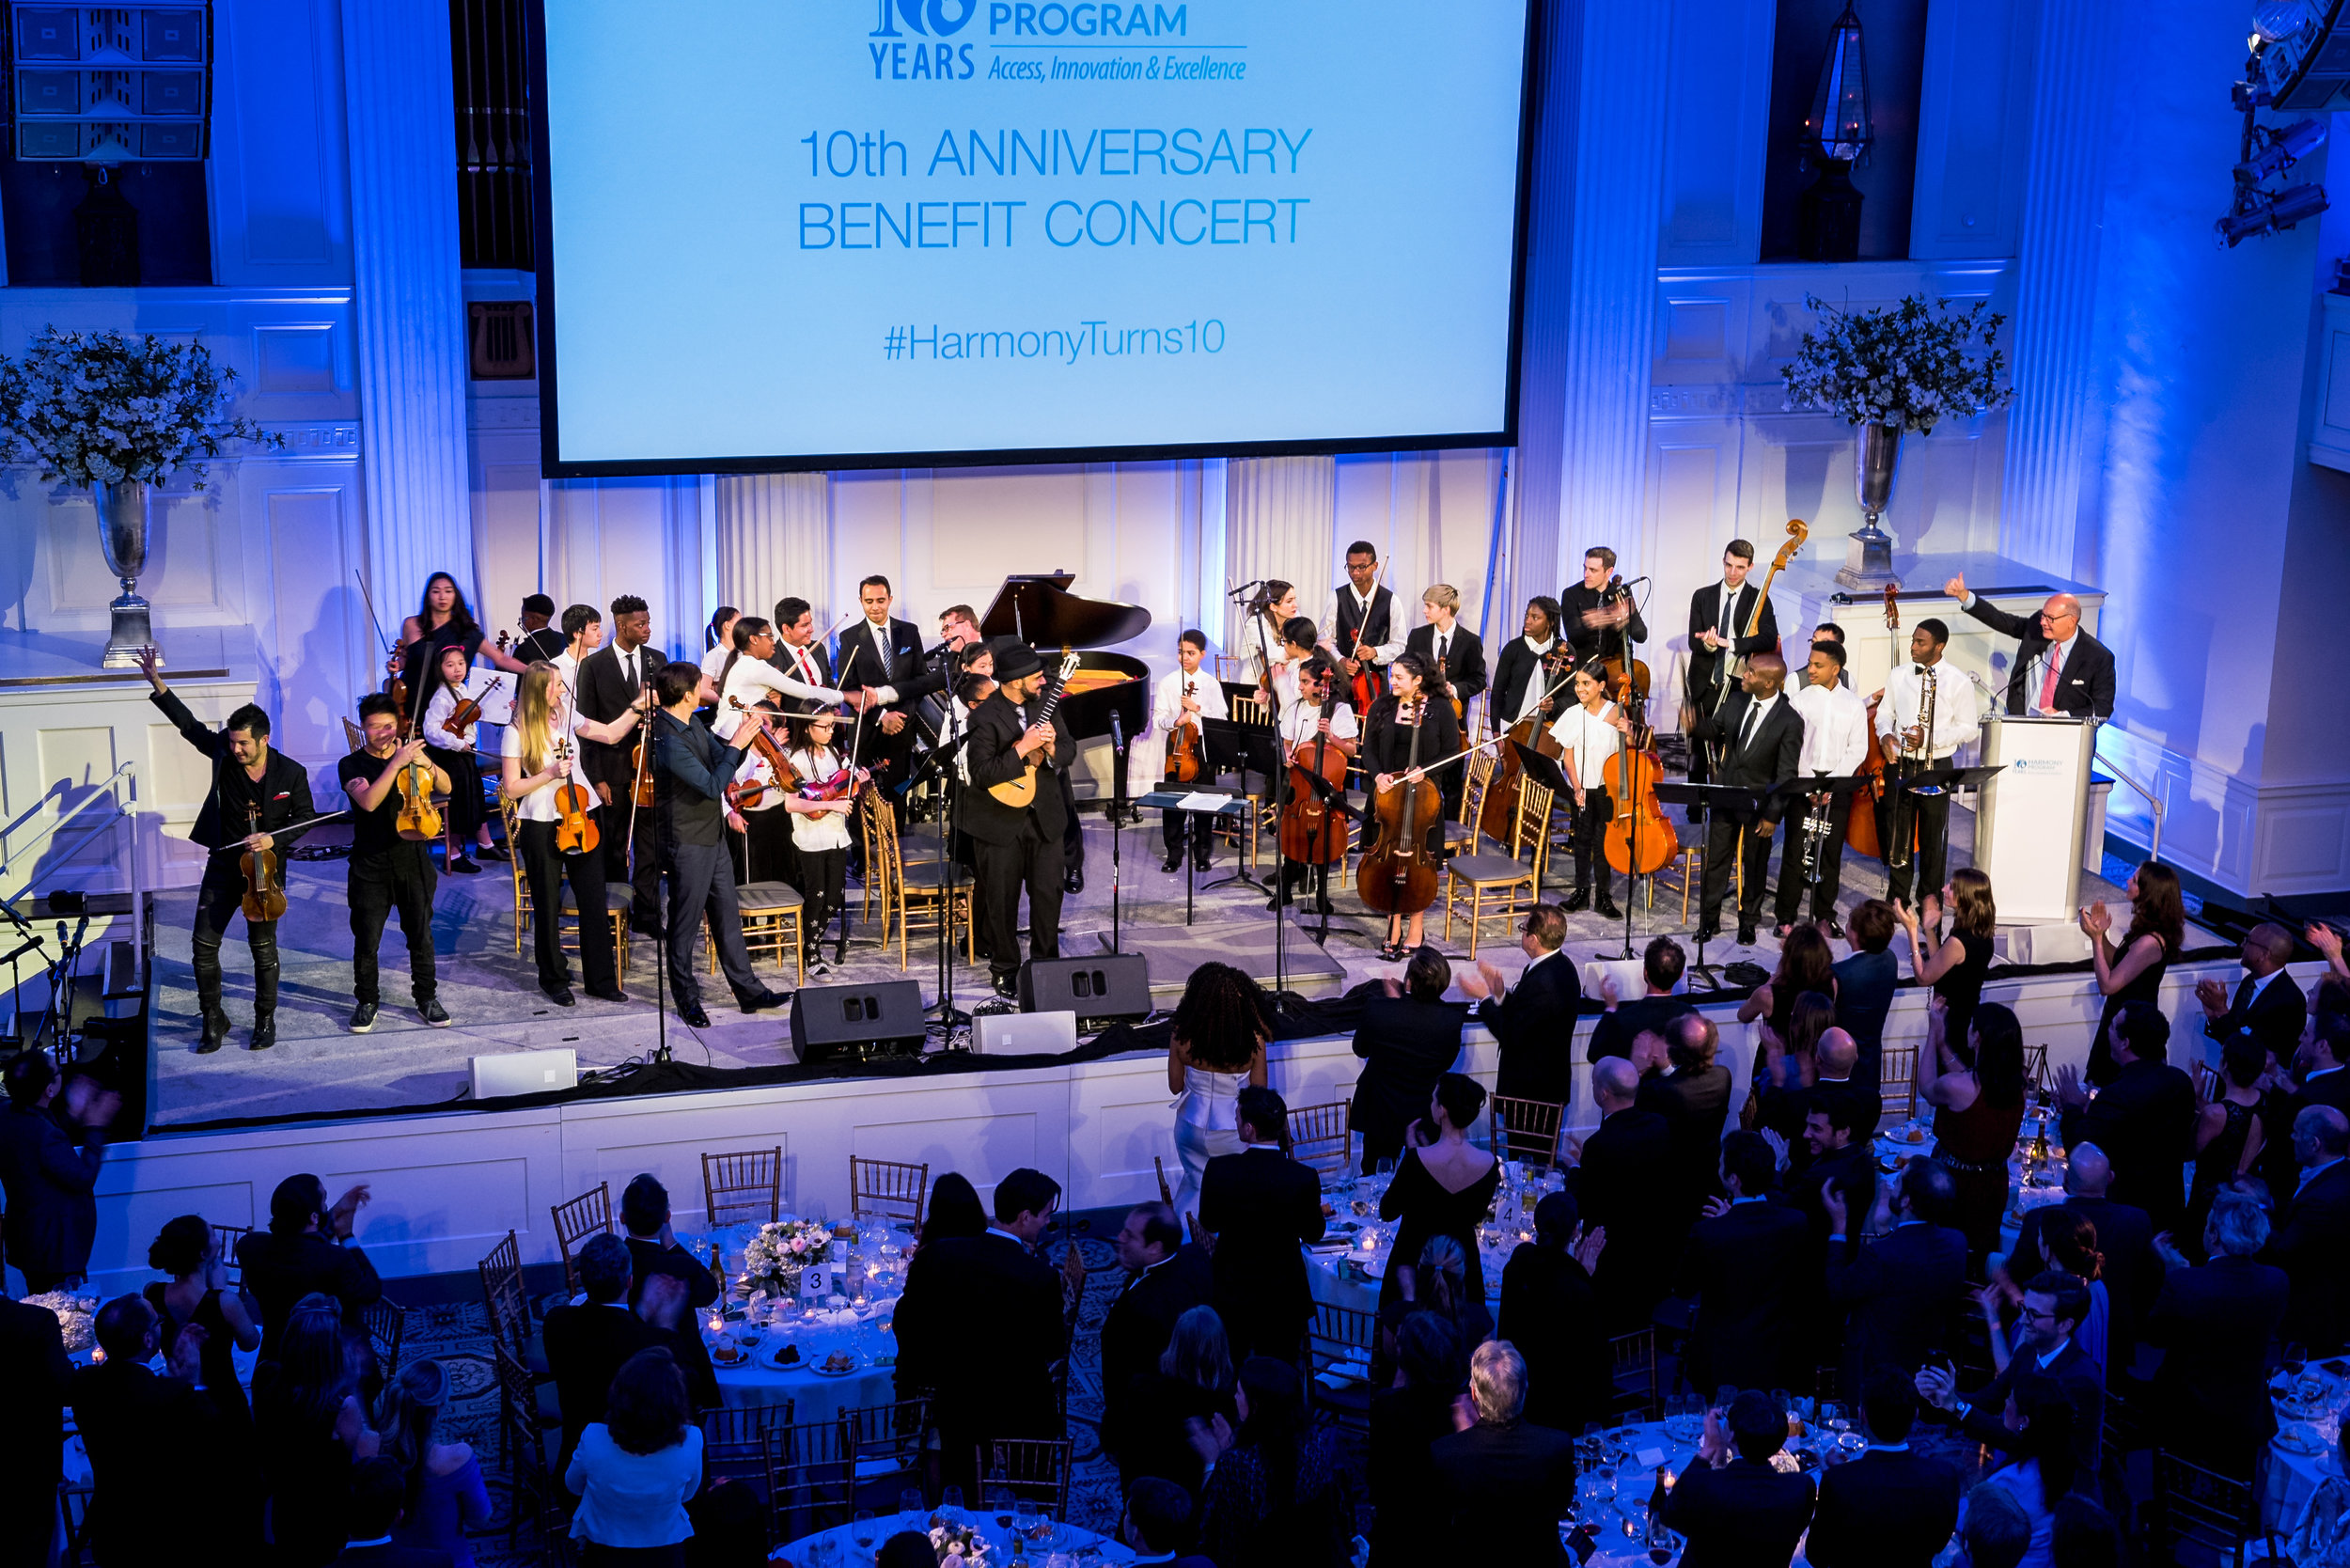 Harmony Program, 10th Anniversary Benefit Concert, 583 Park Avenue